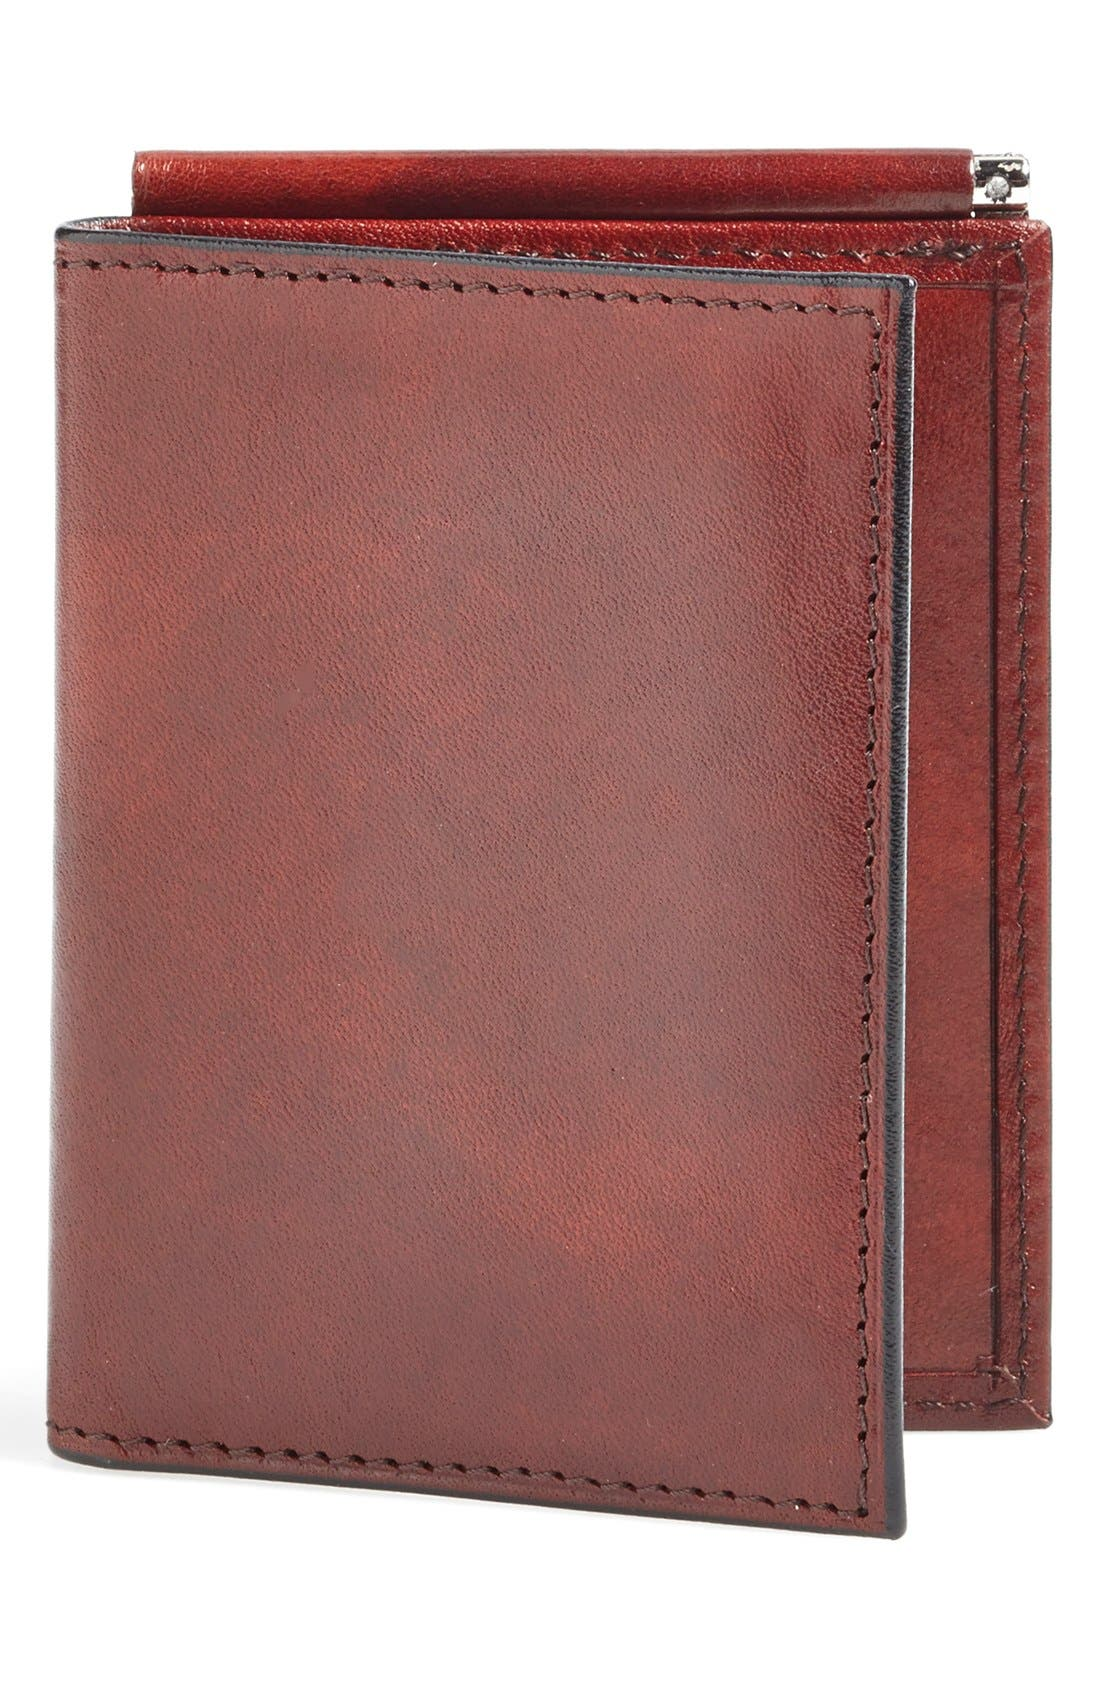 Main Image - Bosca 'Old Leather' Money Clip Wallet